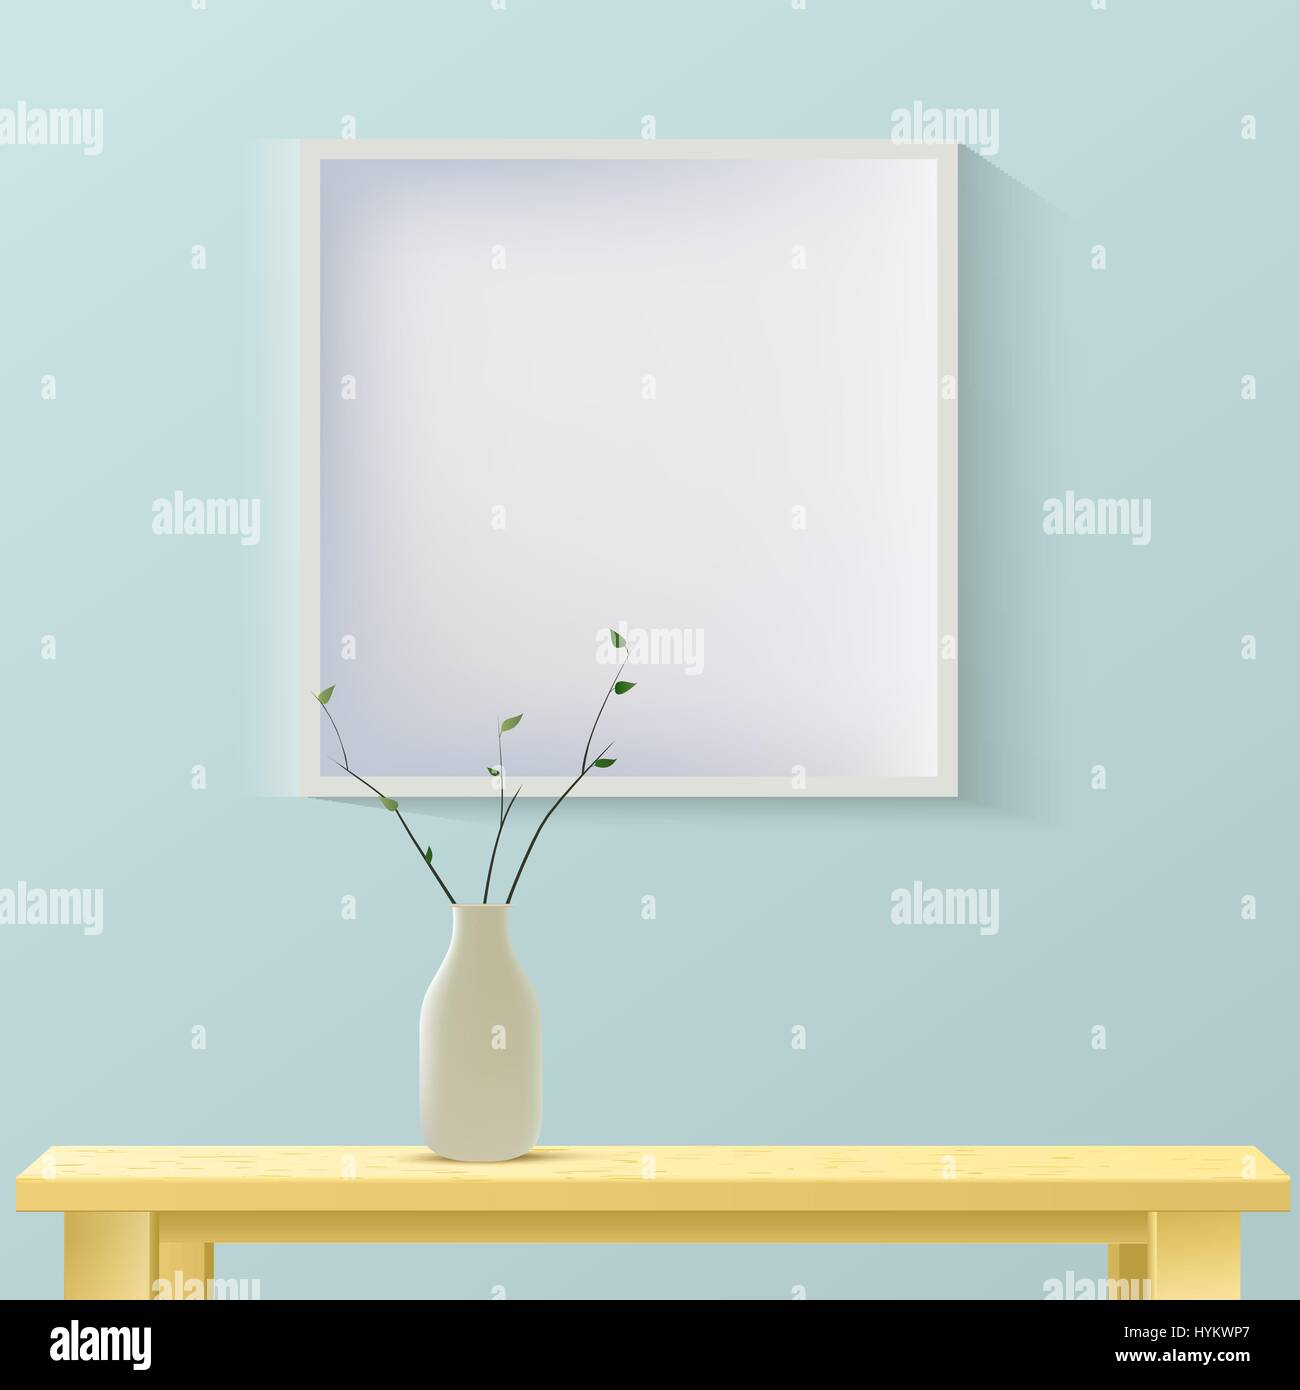 Interior room realistic mockup with frame or picture on wall,wooden table and vase. Layered, editable. Fashion trendy - Stock Vector